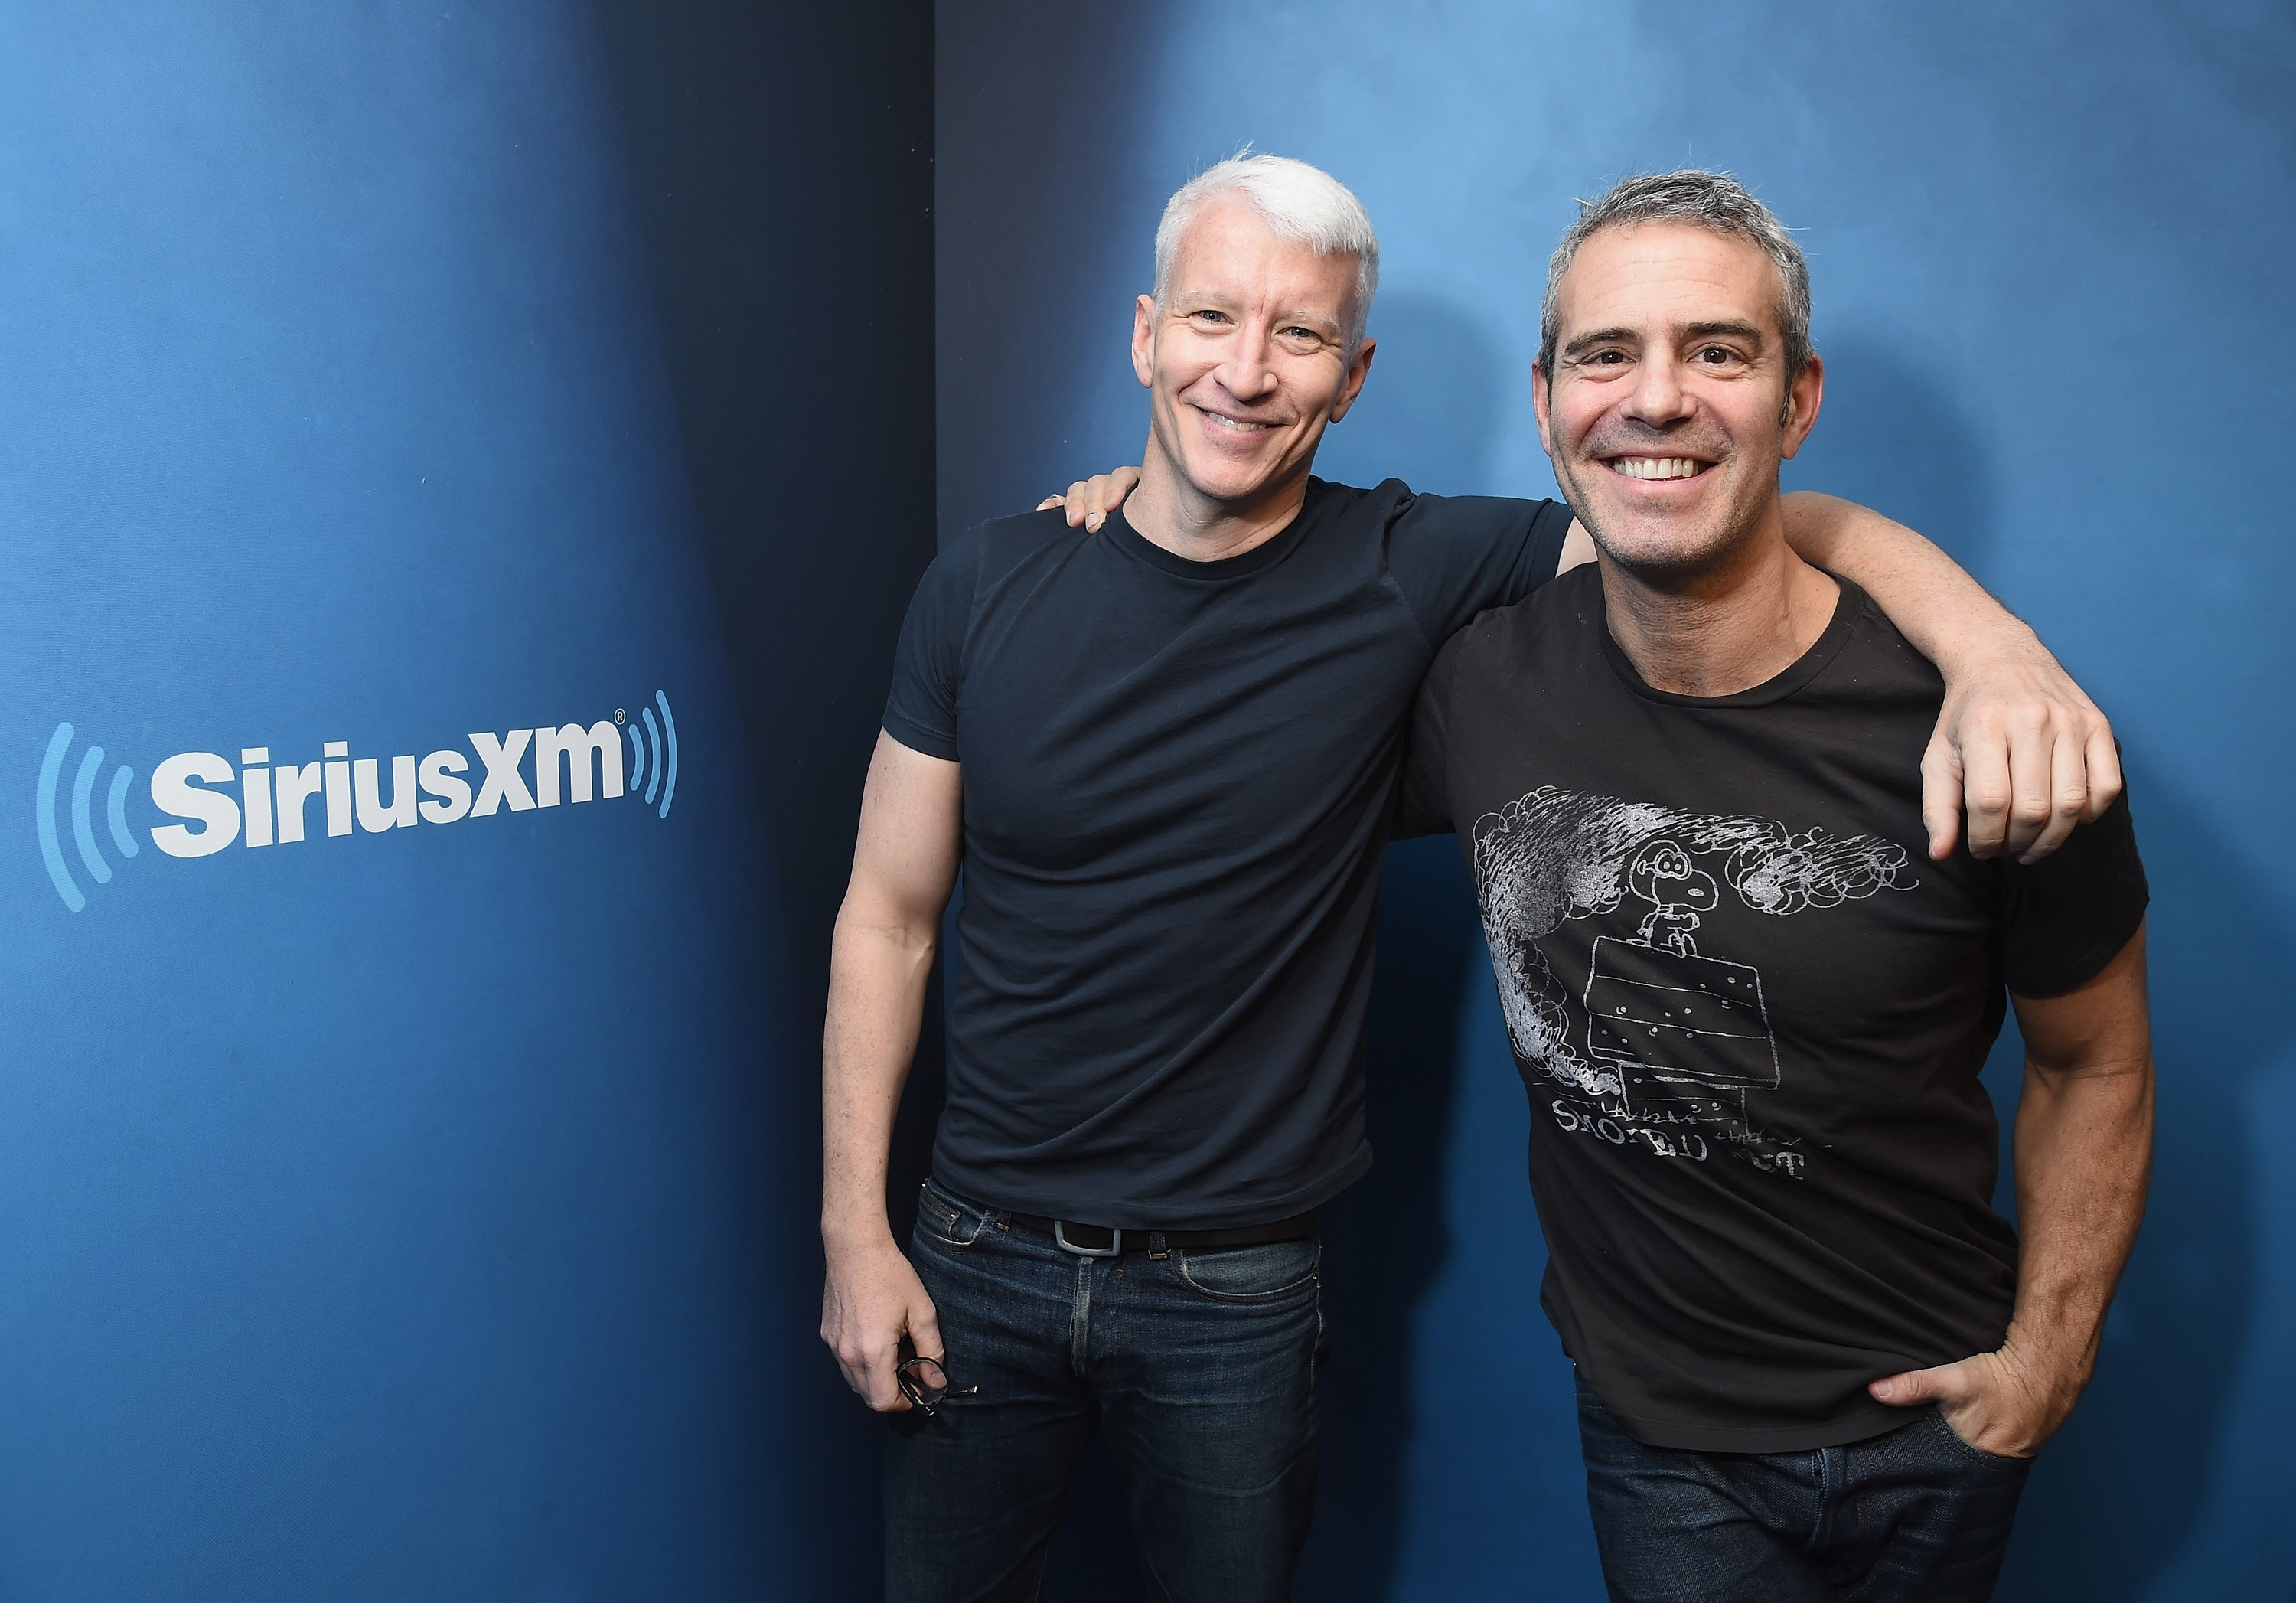 Anderson Cooper and Andy Cohen at SiriusXM Studios on January 13, 2017 in New York City | Photo: Getty Images